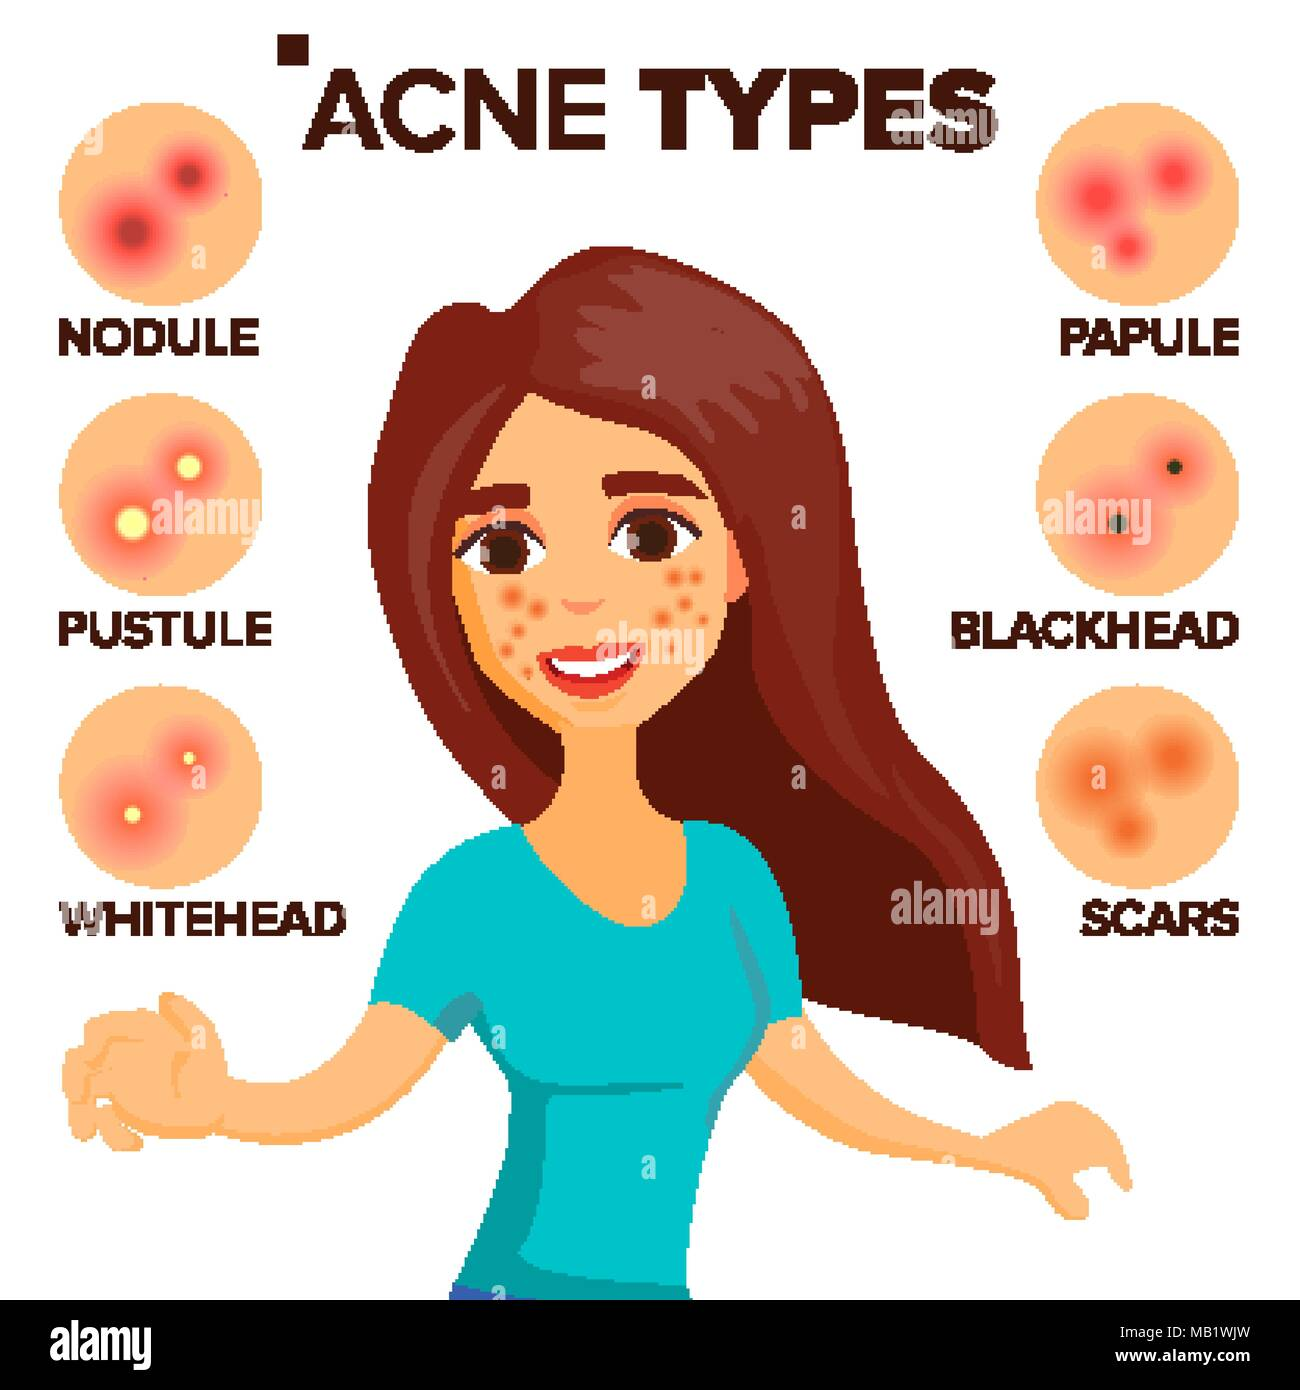 Acne Types Vector  Girl With Acne  Skin Care  Treatment  Healthy  Nodule  Whitehead  Isolated